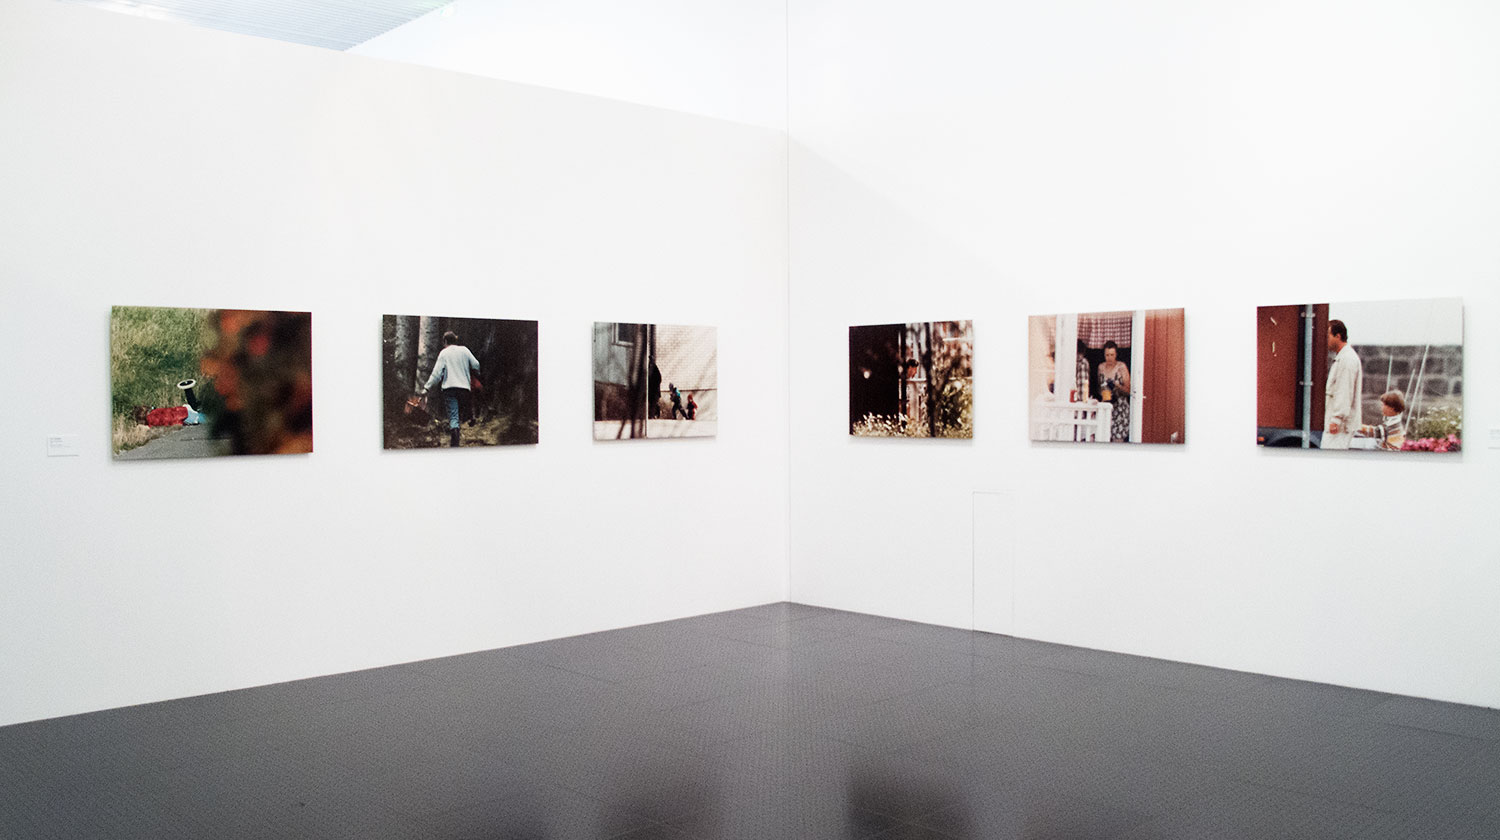 Pictures of a Family, Centre Pompidou - Metz